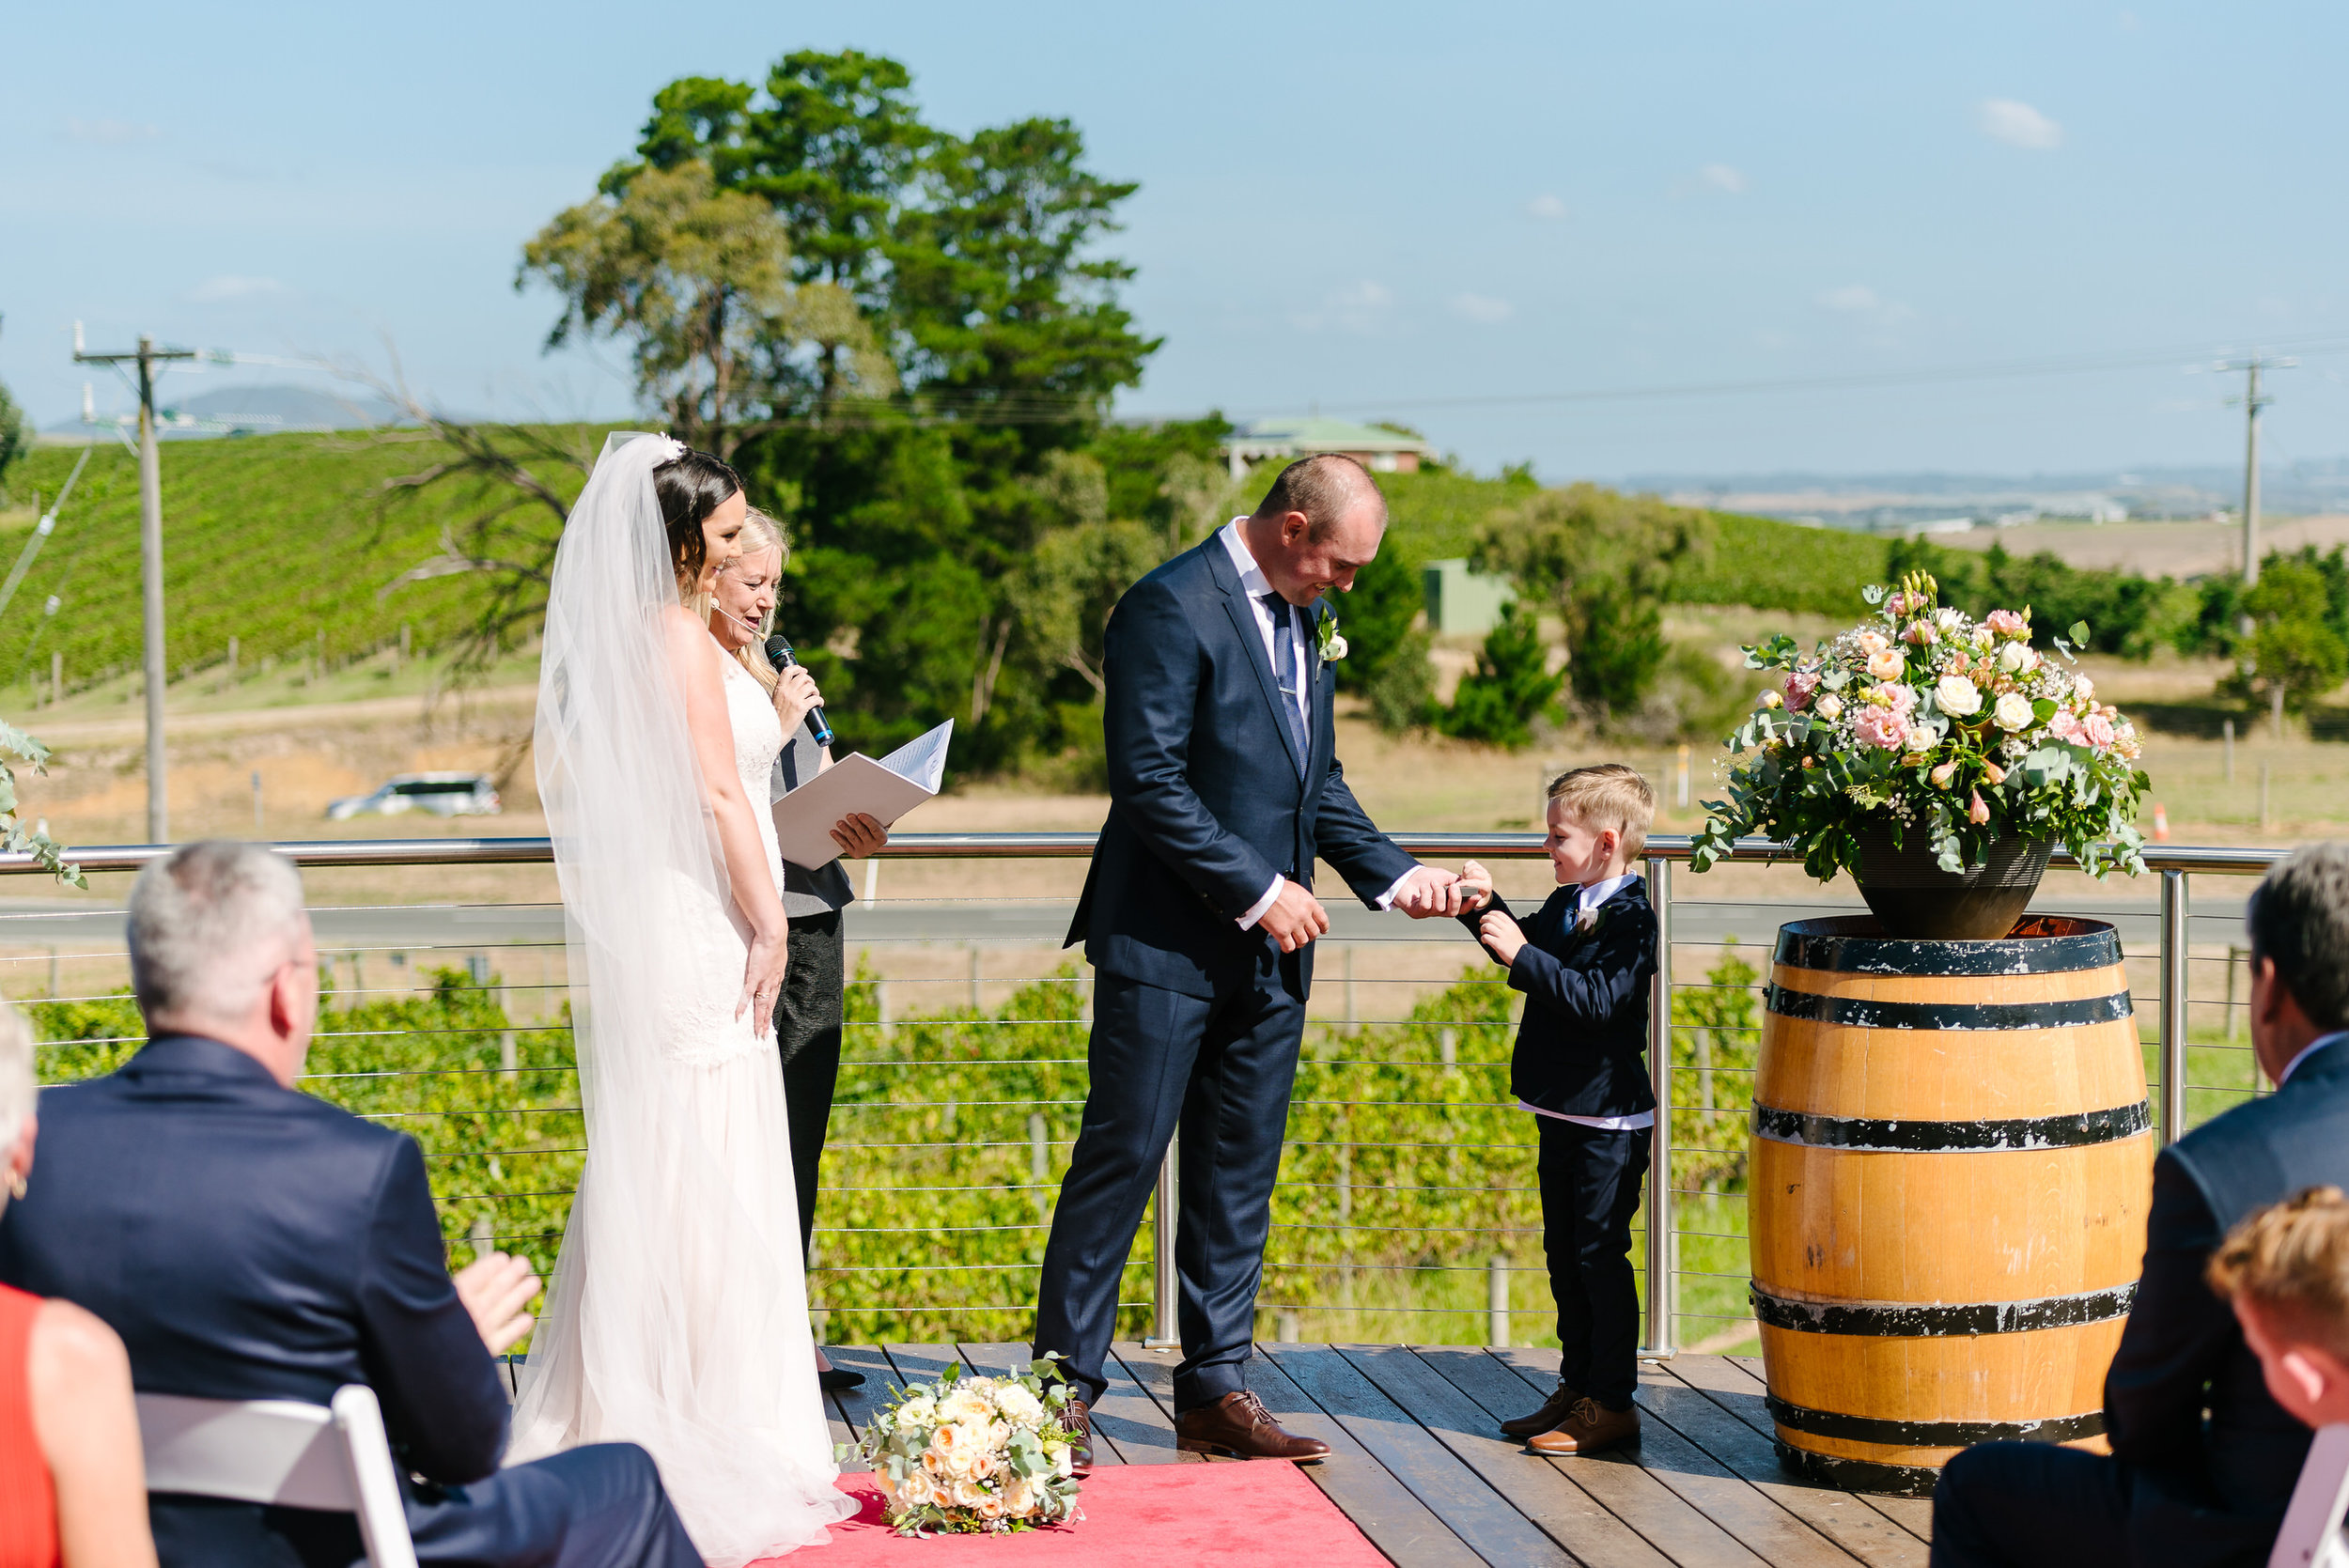 Justin_And_Jim_Photography_Balgownie_Winery_Wedding32.JPG